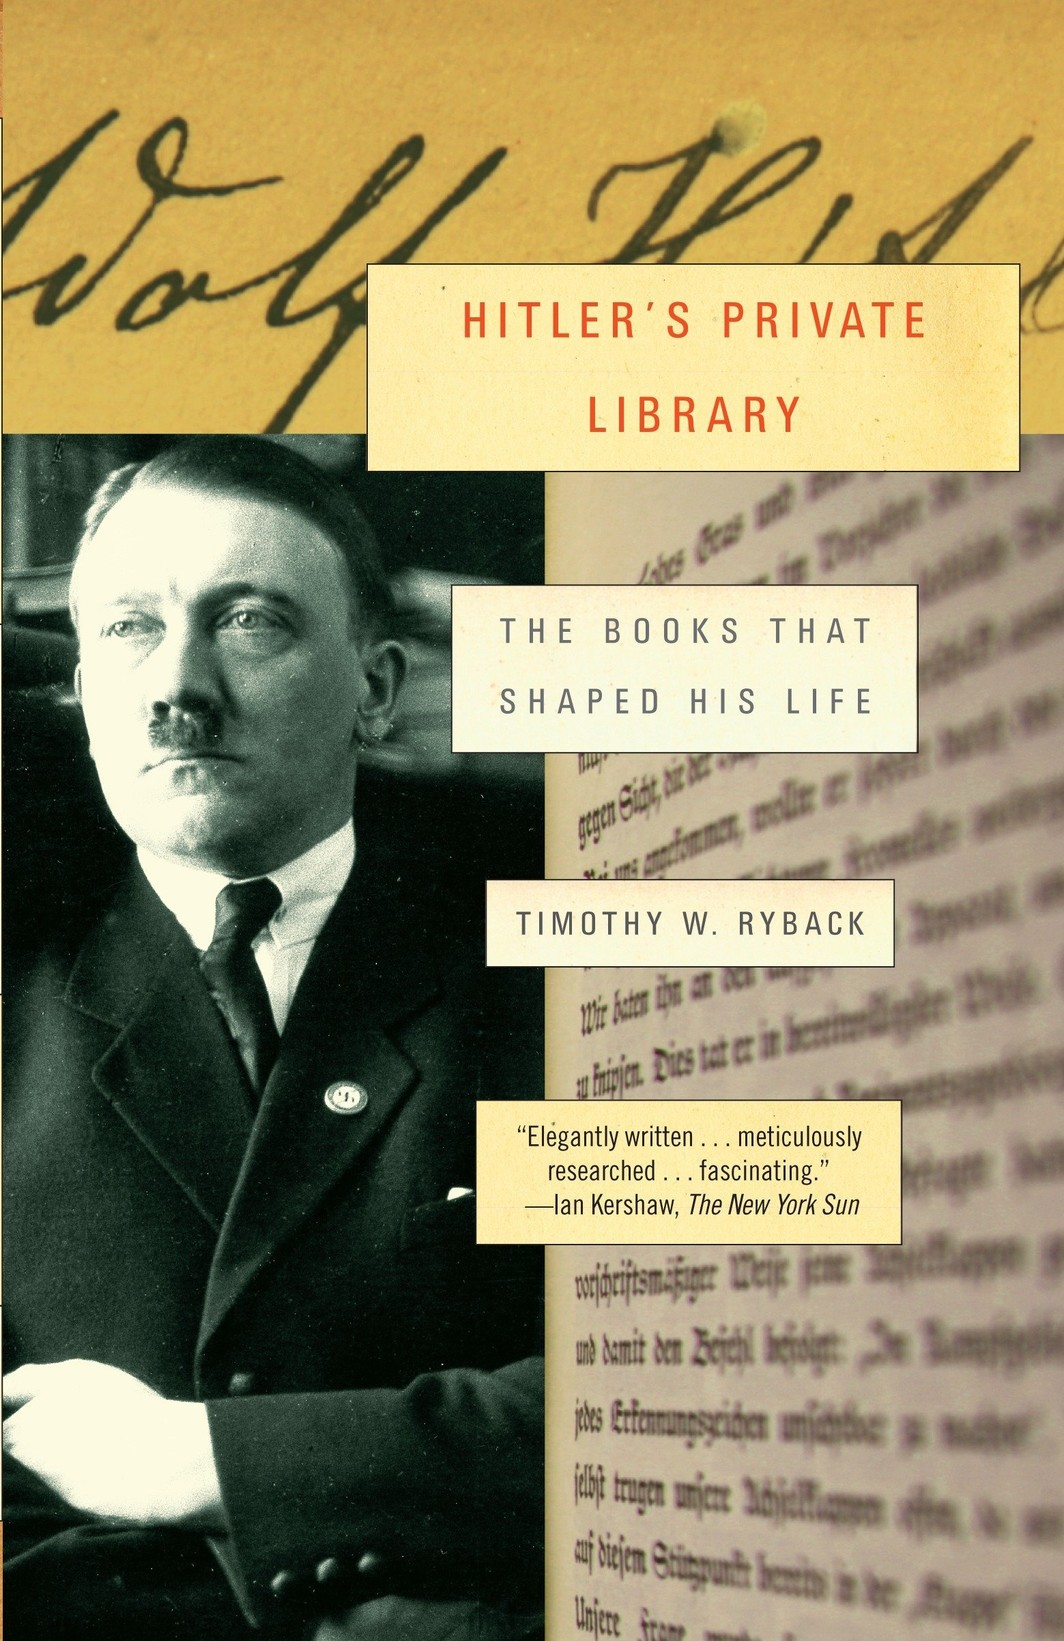 The cover of Hitler's Private Library: The Books That Shaped His Life